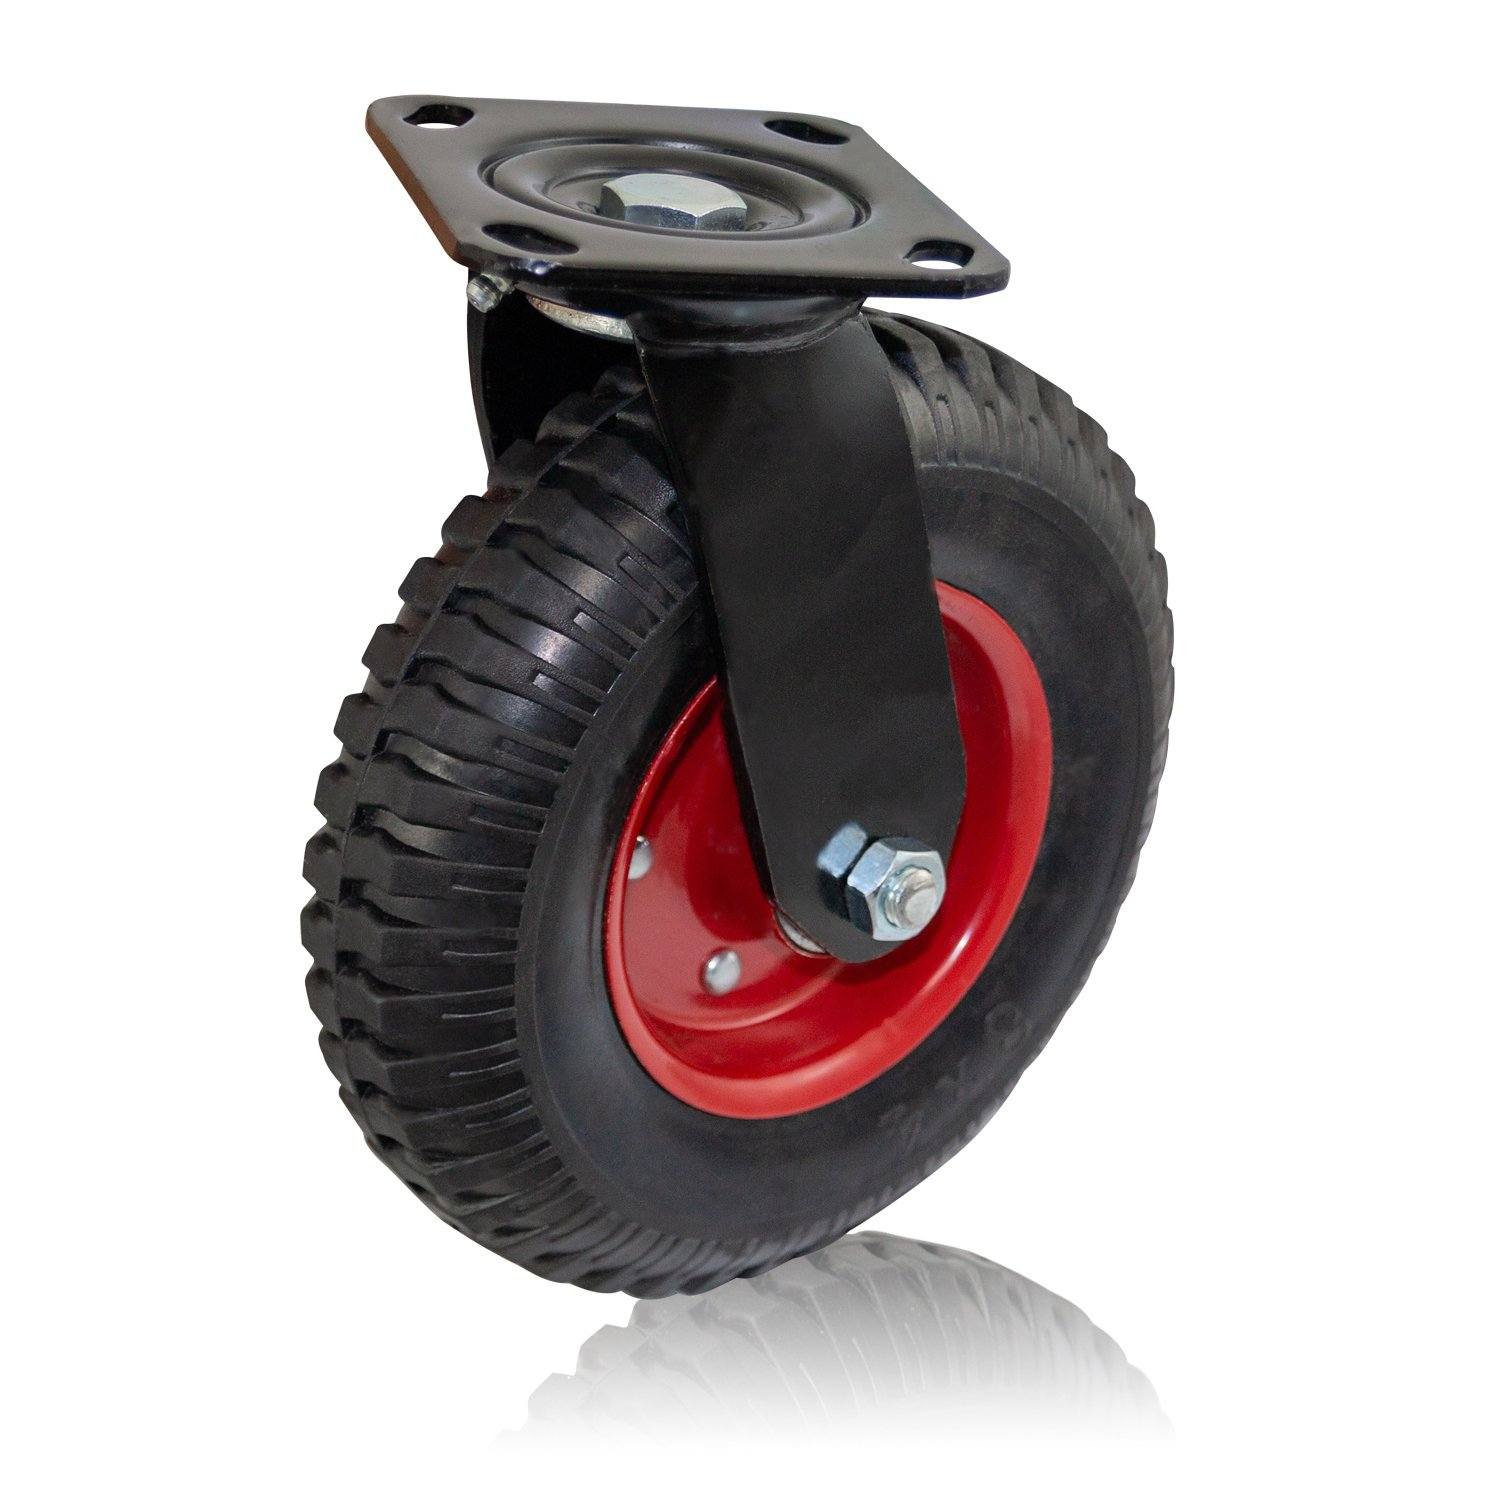 Houseables Caster Wheel, Pneumatic Casters, 8 Inch, 1 Wheel, Red Rim, Rubber, Cast Iron, Large, Heavy Duty Industrial Tires, Outdoor, Swivel, Flat Free for Carts, Dolly, Workbench, Trolley